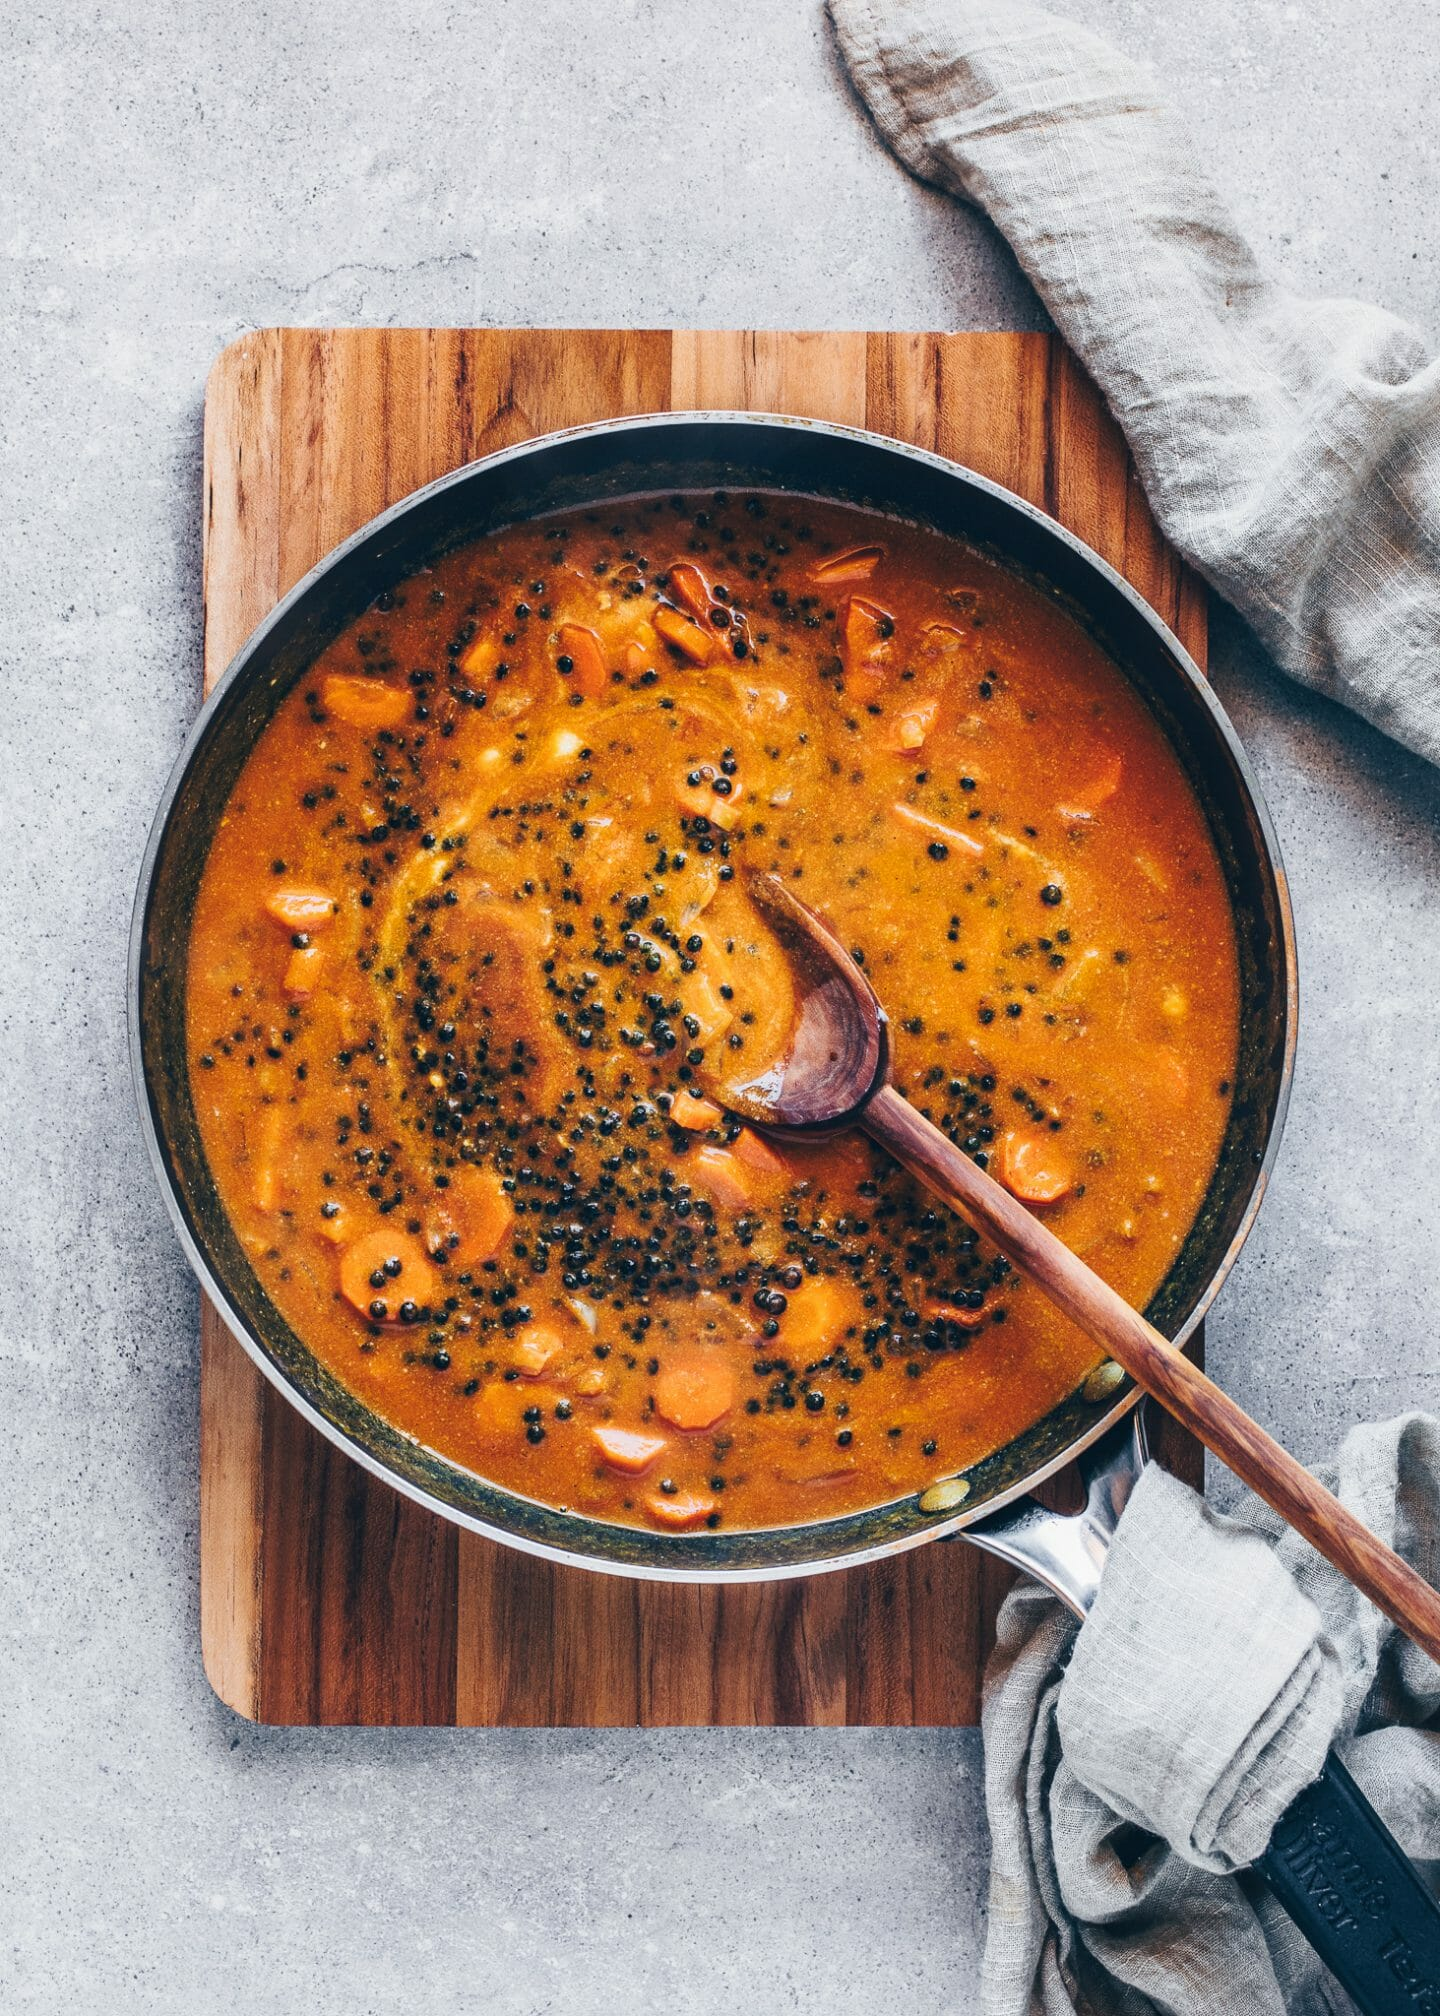 Roasted onion, garlic, ginger, carrots, black lentils, strained tomatoes, vegetable broth, and coconut milk in a skillet